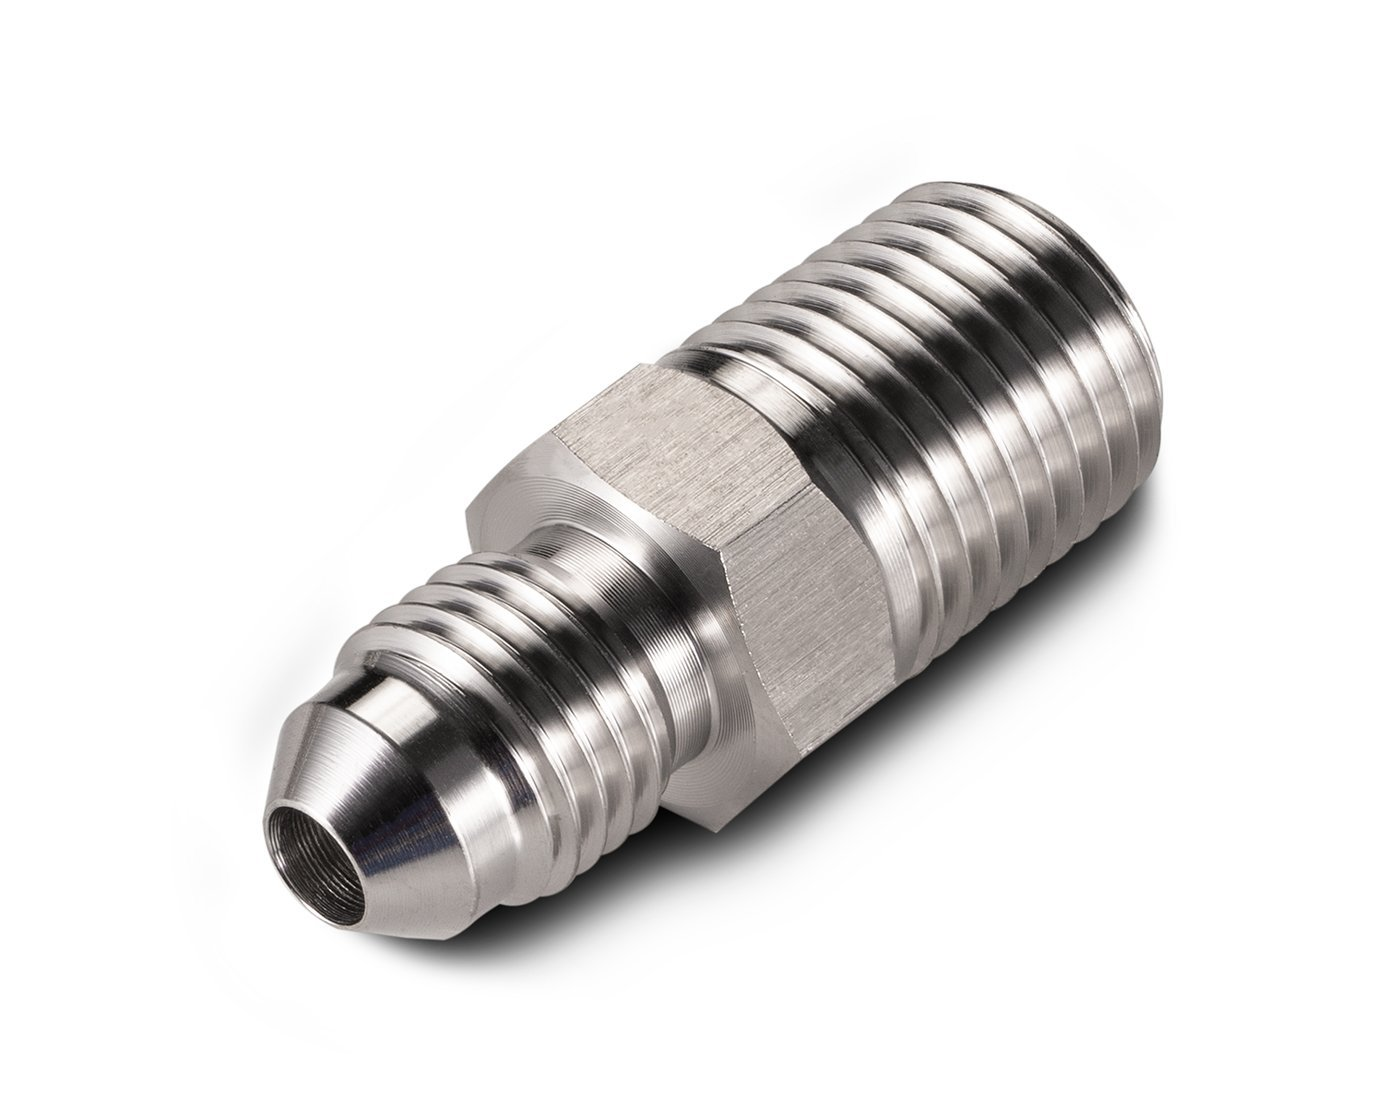 BVV 37° MJIC X MNPT Shop All Categories BVV 1/4-inch X 1/4-inch MNPT